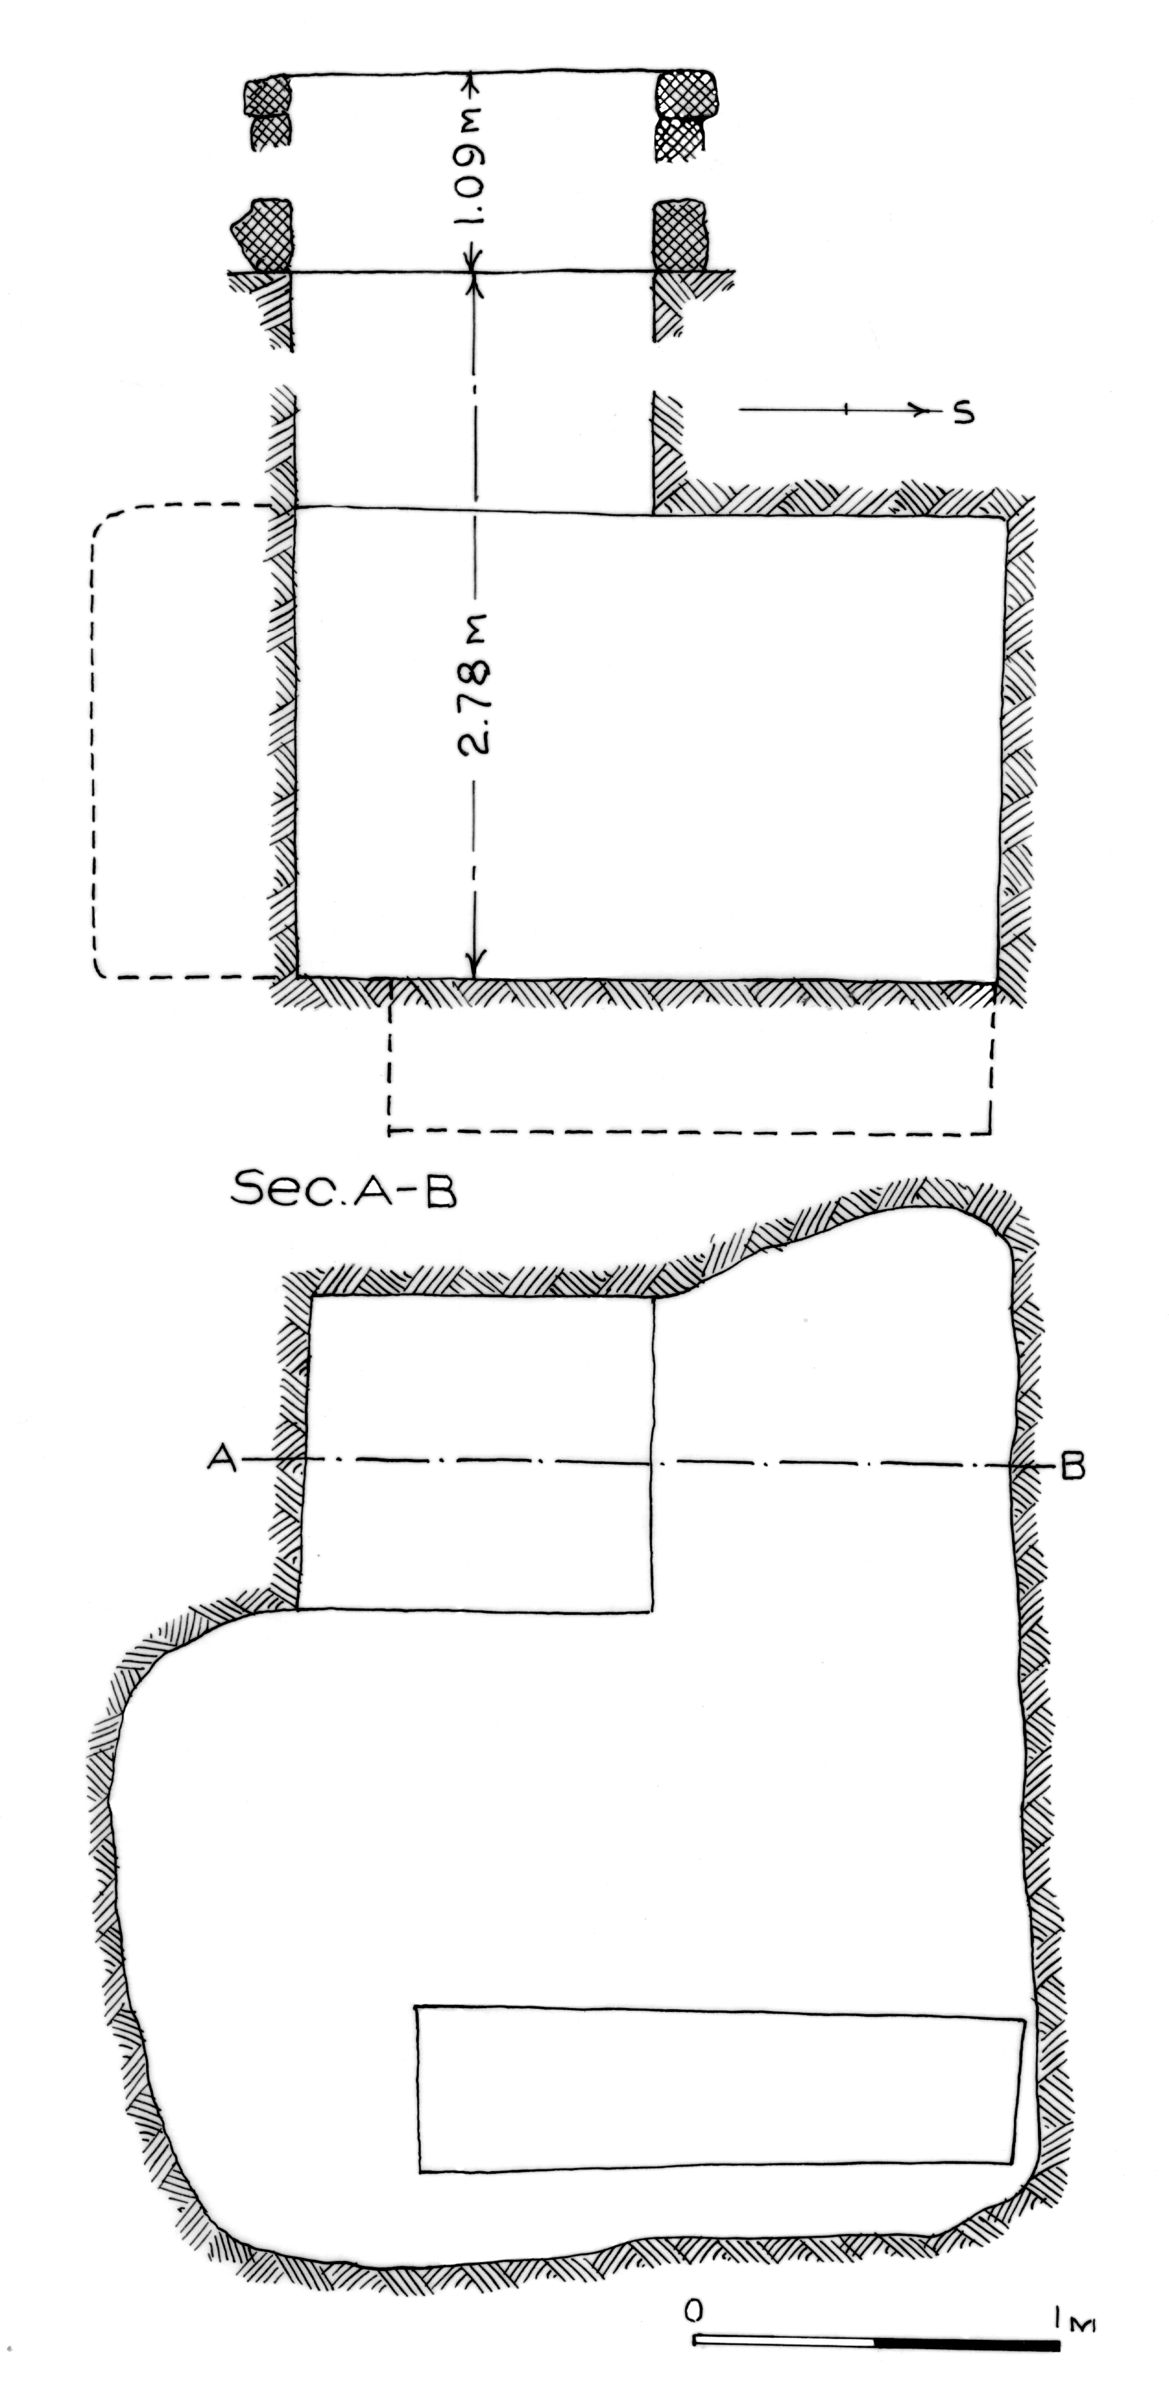 Maps and plans: G 7562, Shaft A